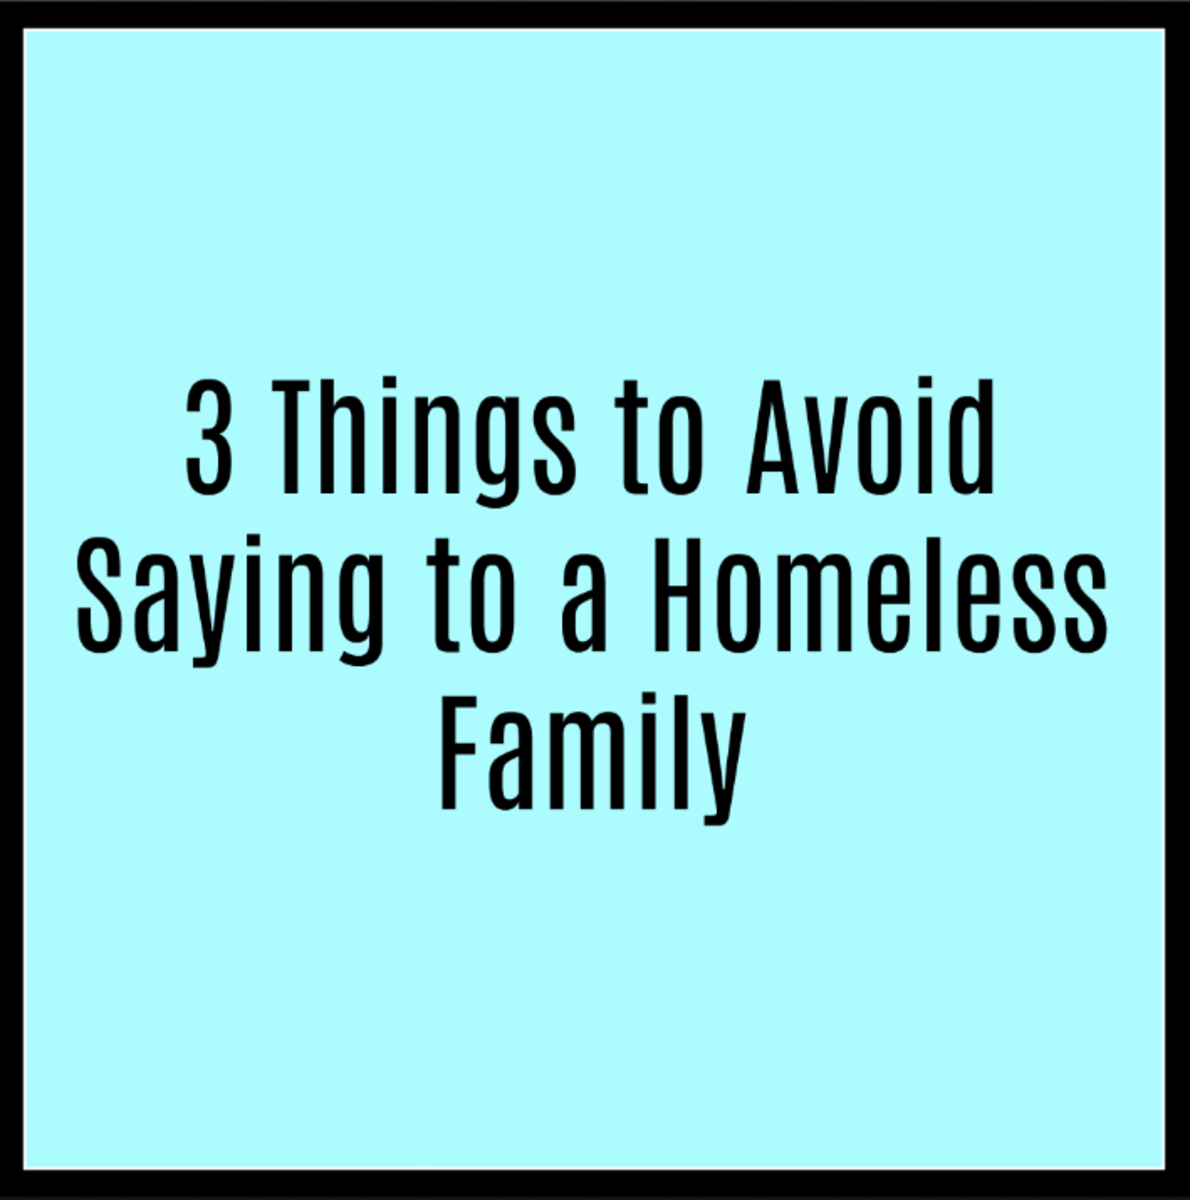 What to Say and Not Say to a Homeless Family